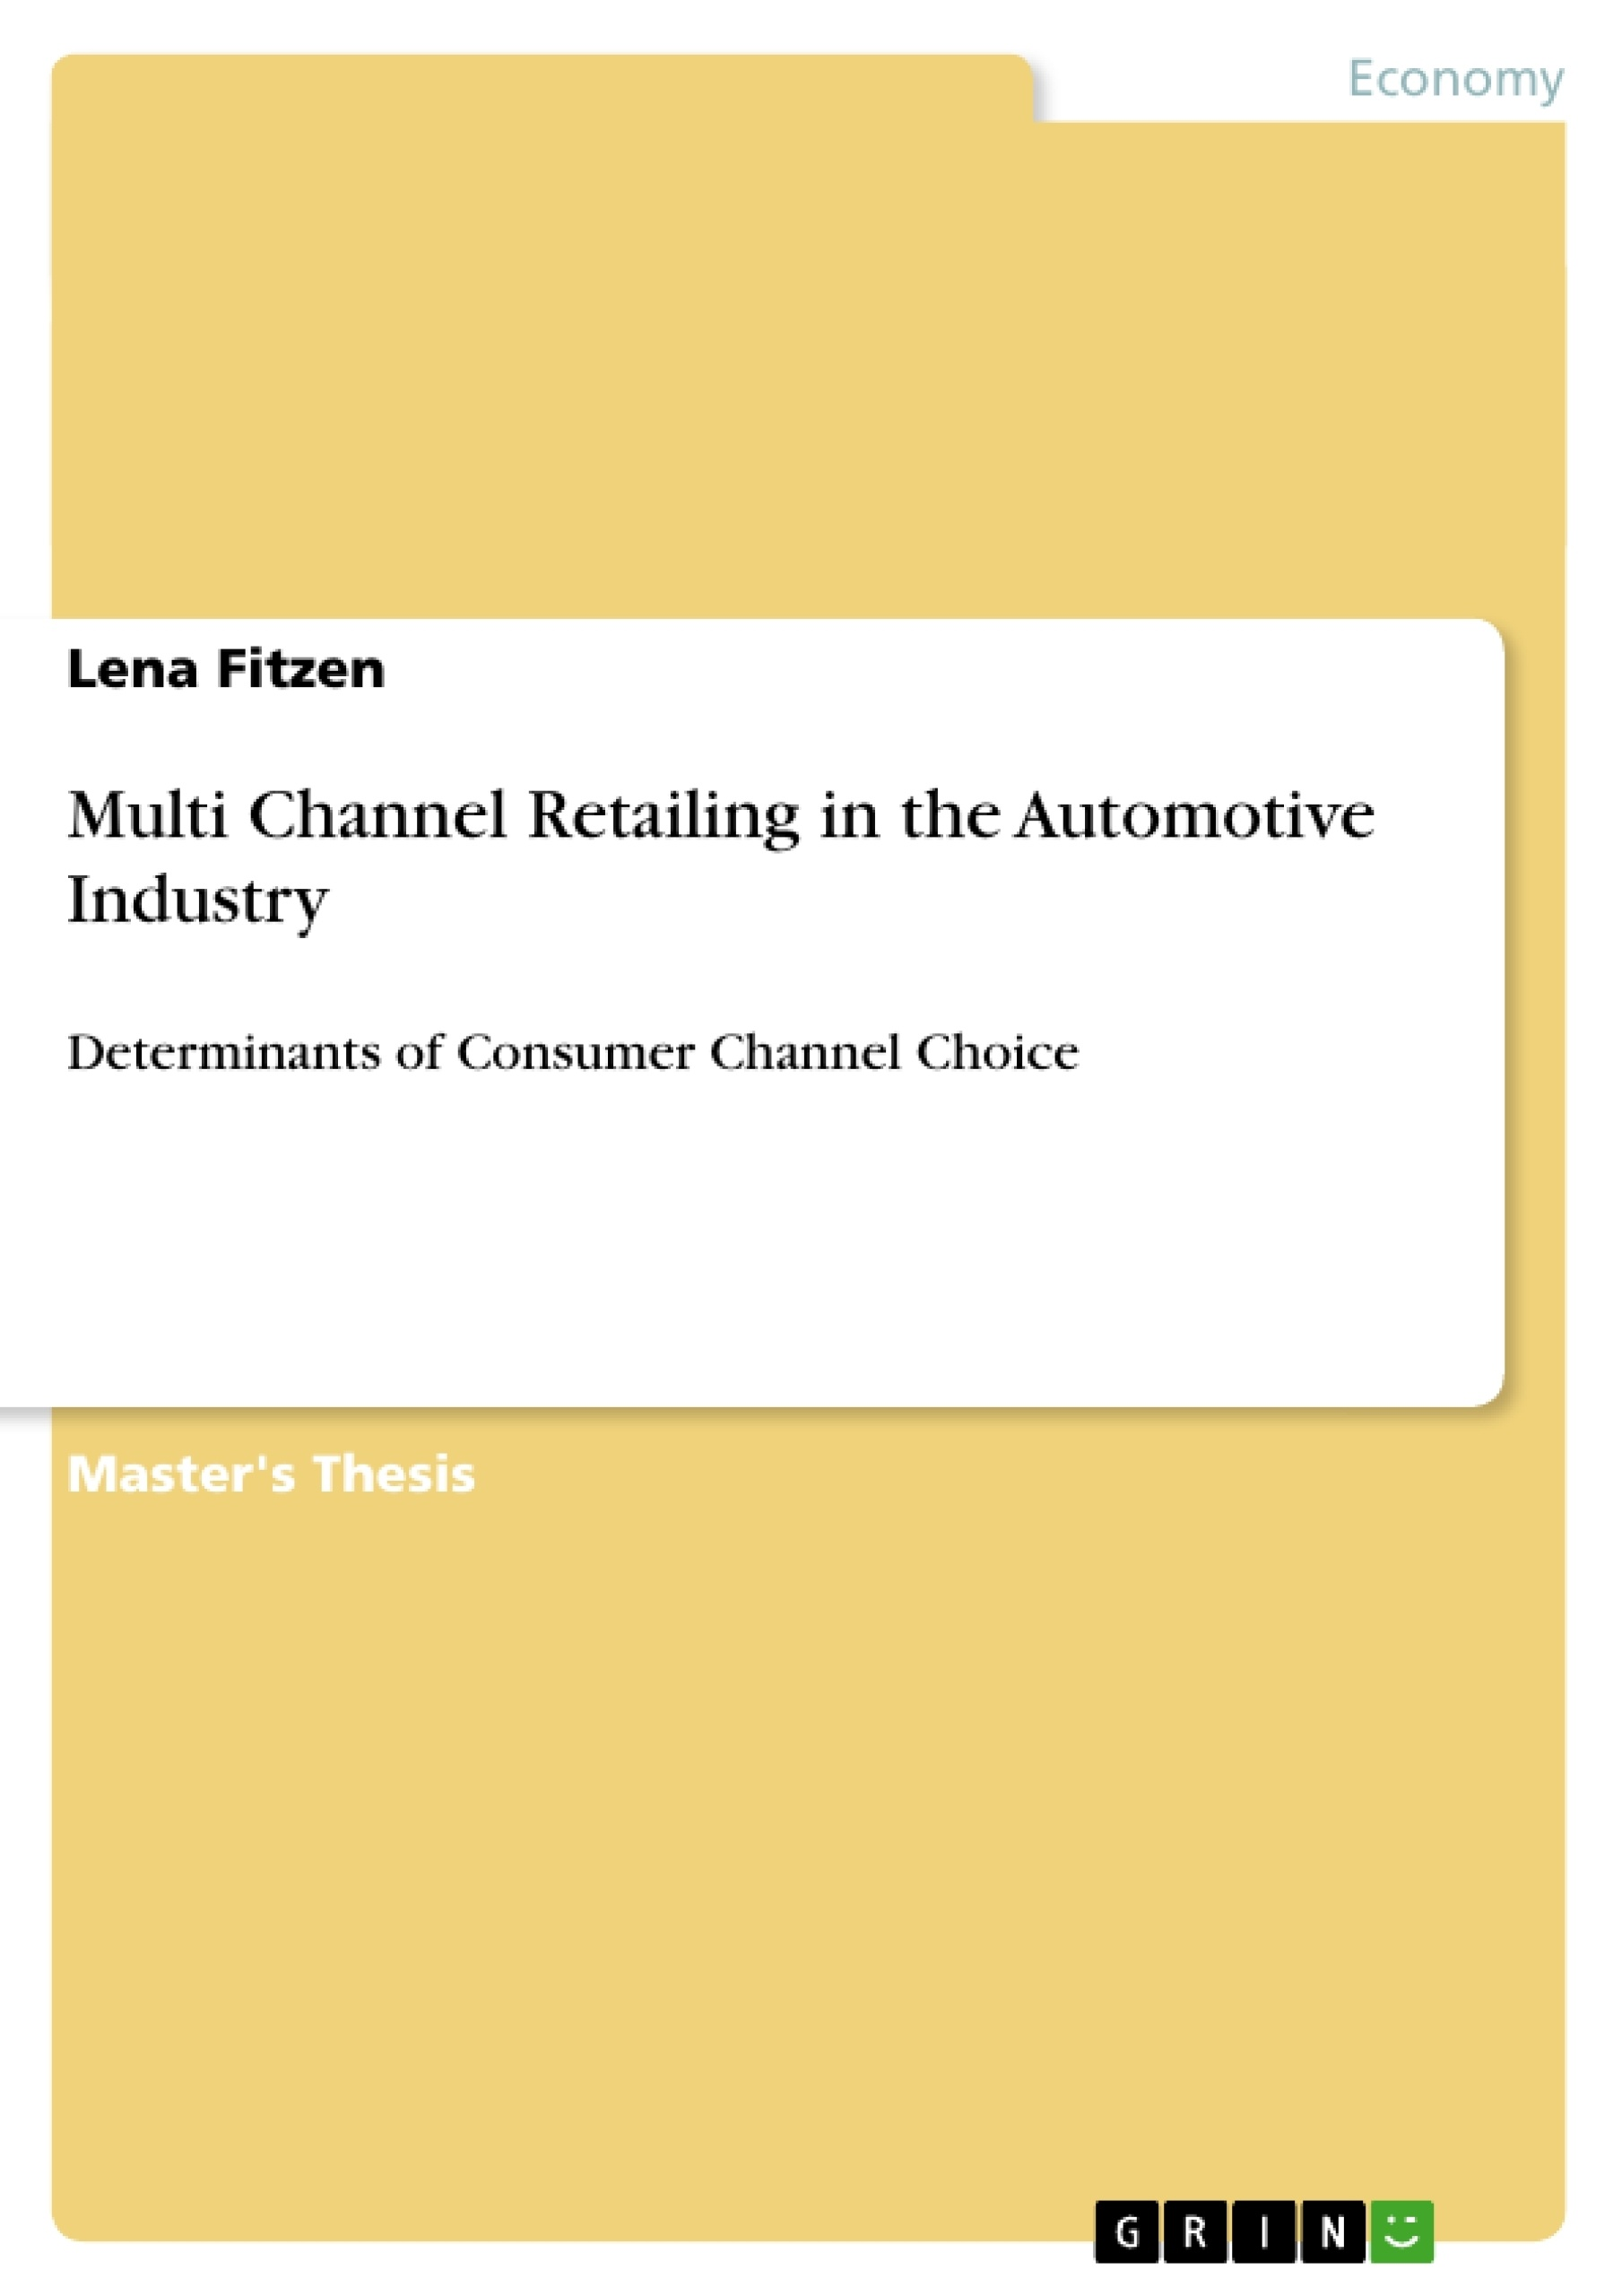 Title: Multi Channel Retailing in the Automotive Industry